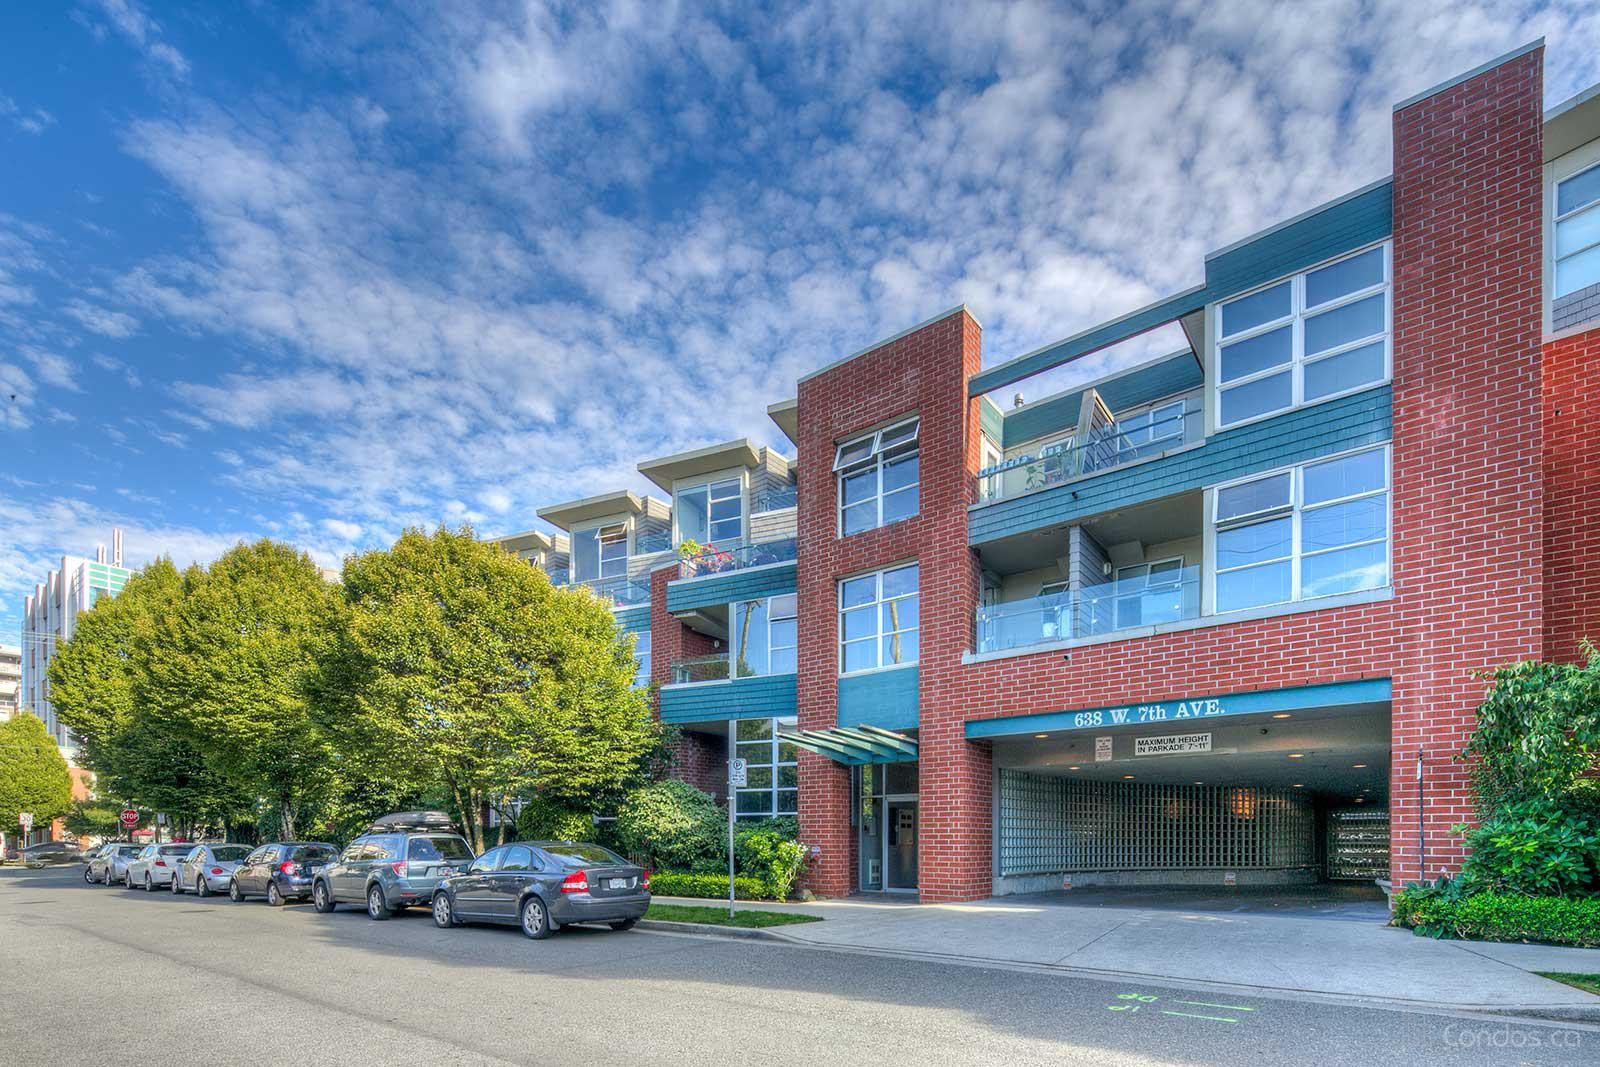 Omega City Homes at 638 W 7th Ave, Vancouver 0